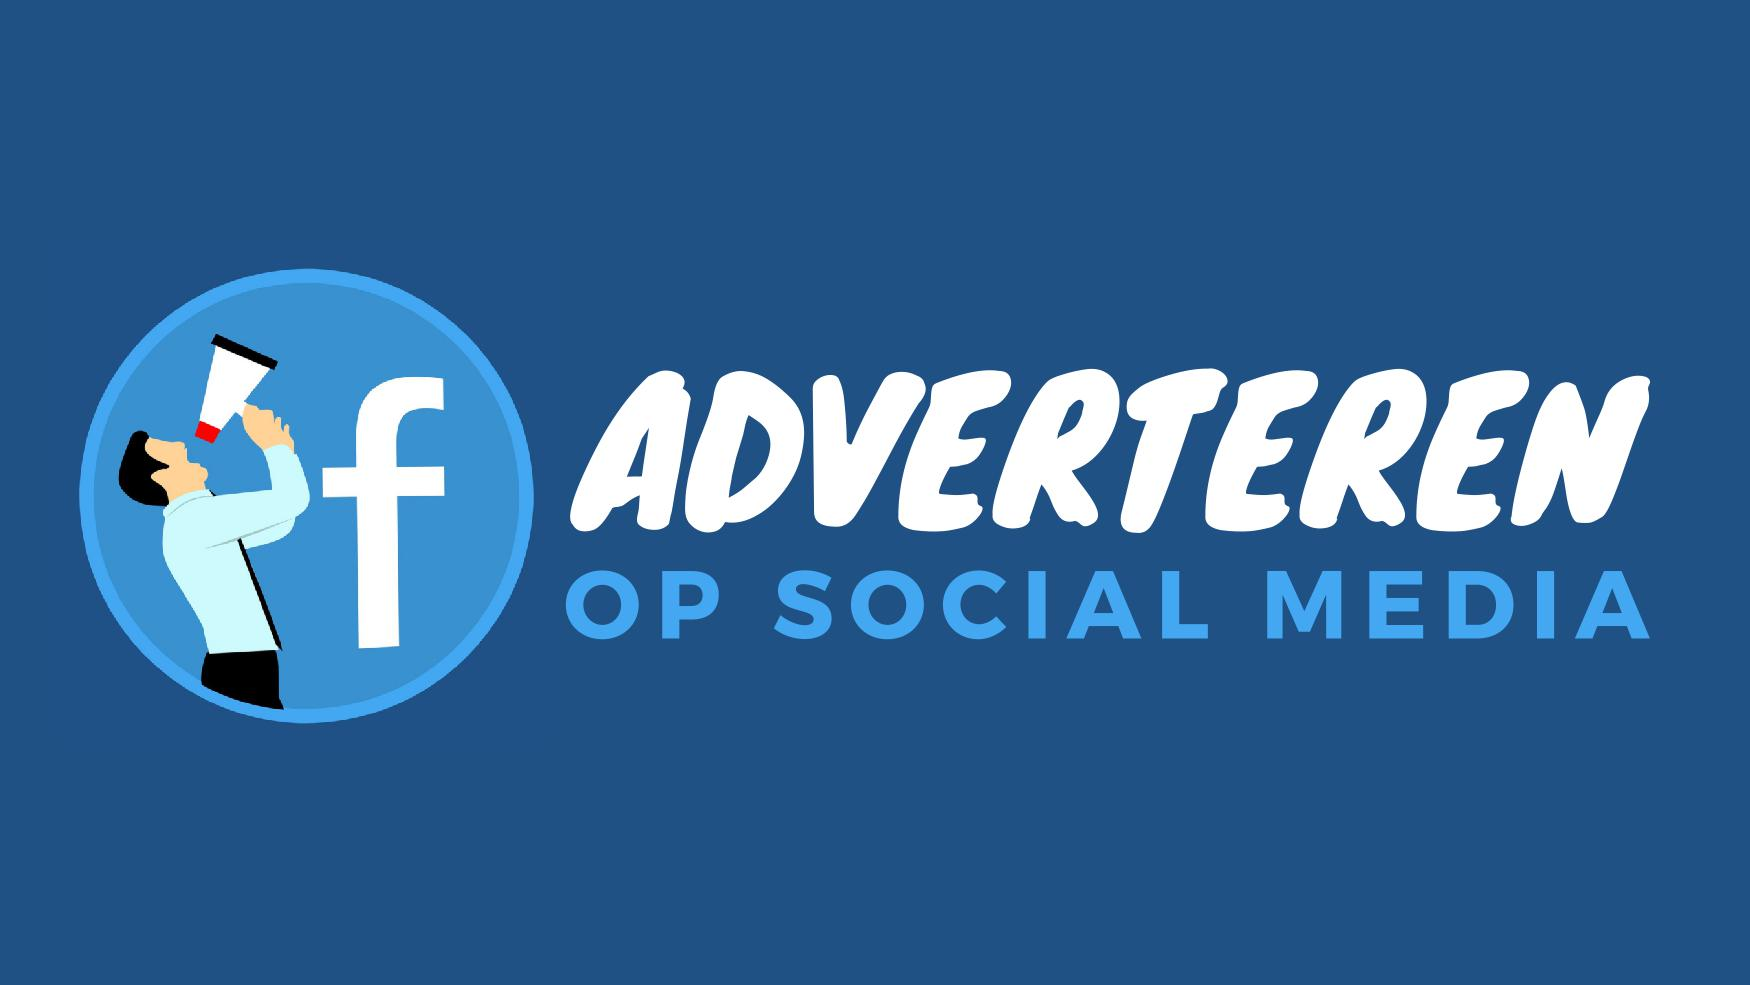 Adverteren op social media